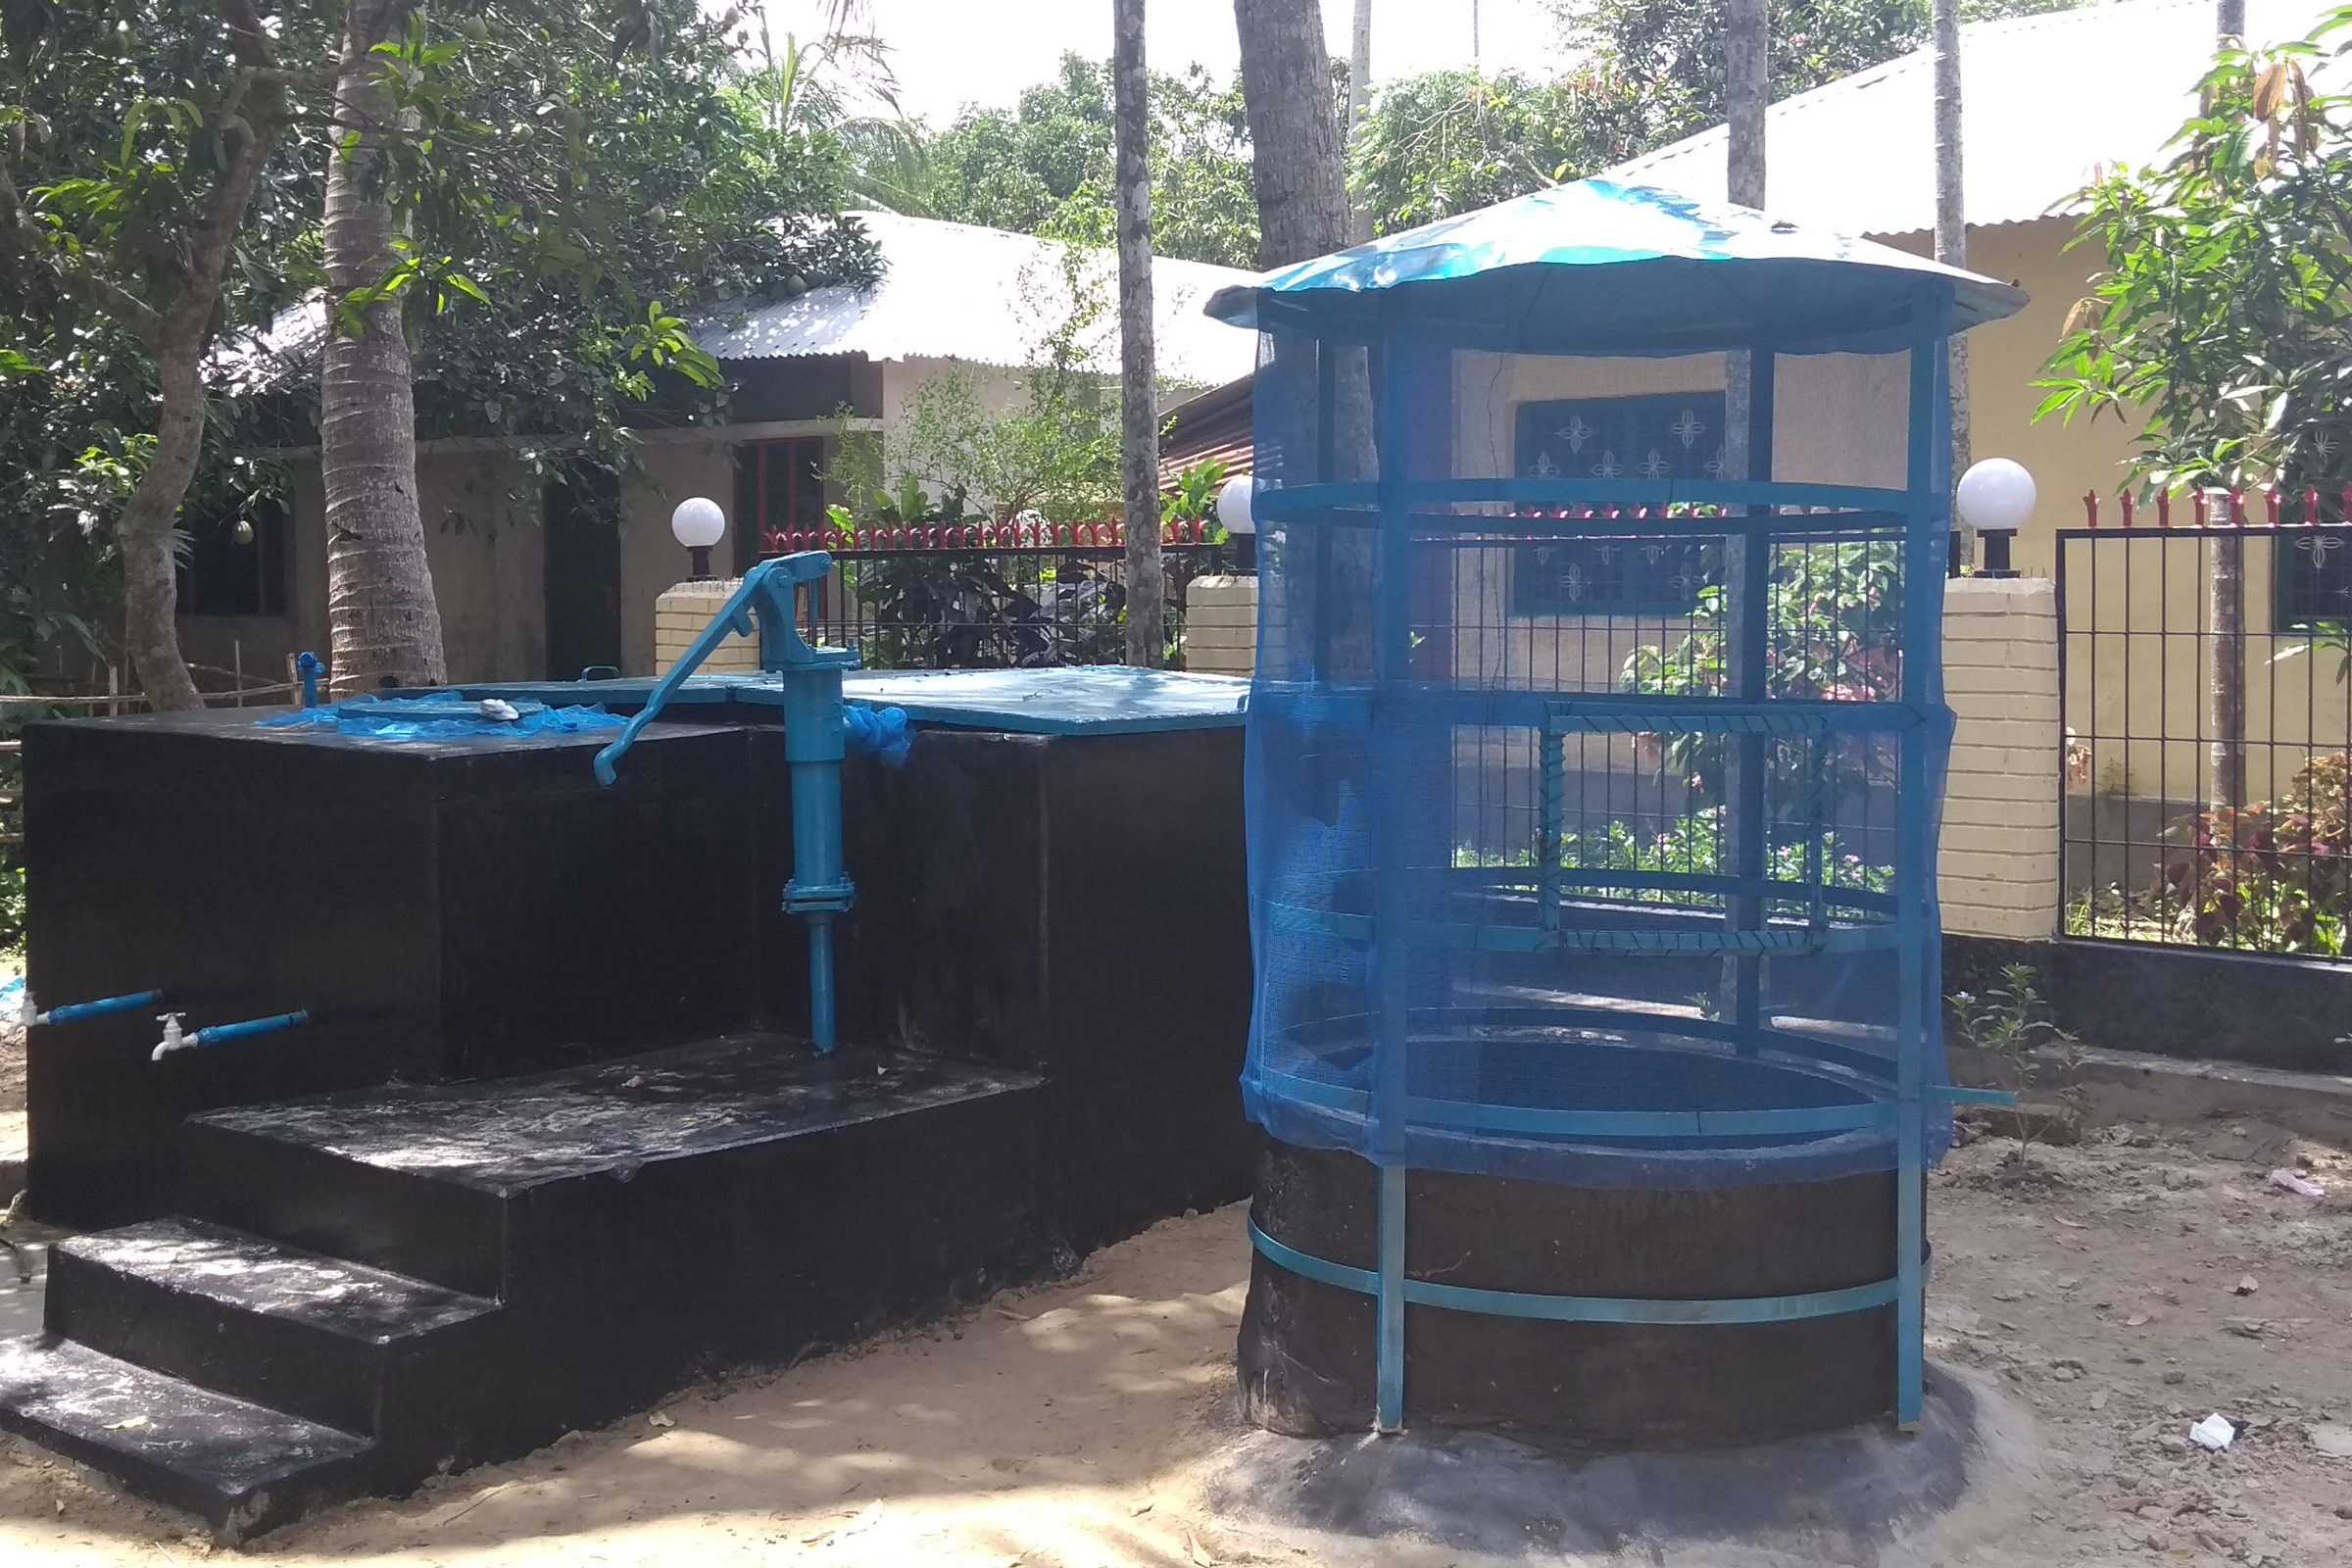 Photograph of a newly constructed community water filter.